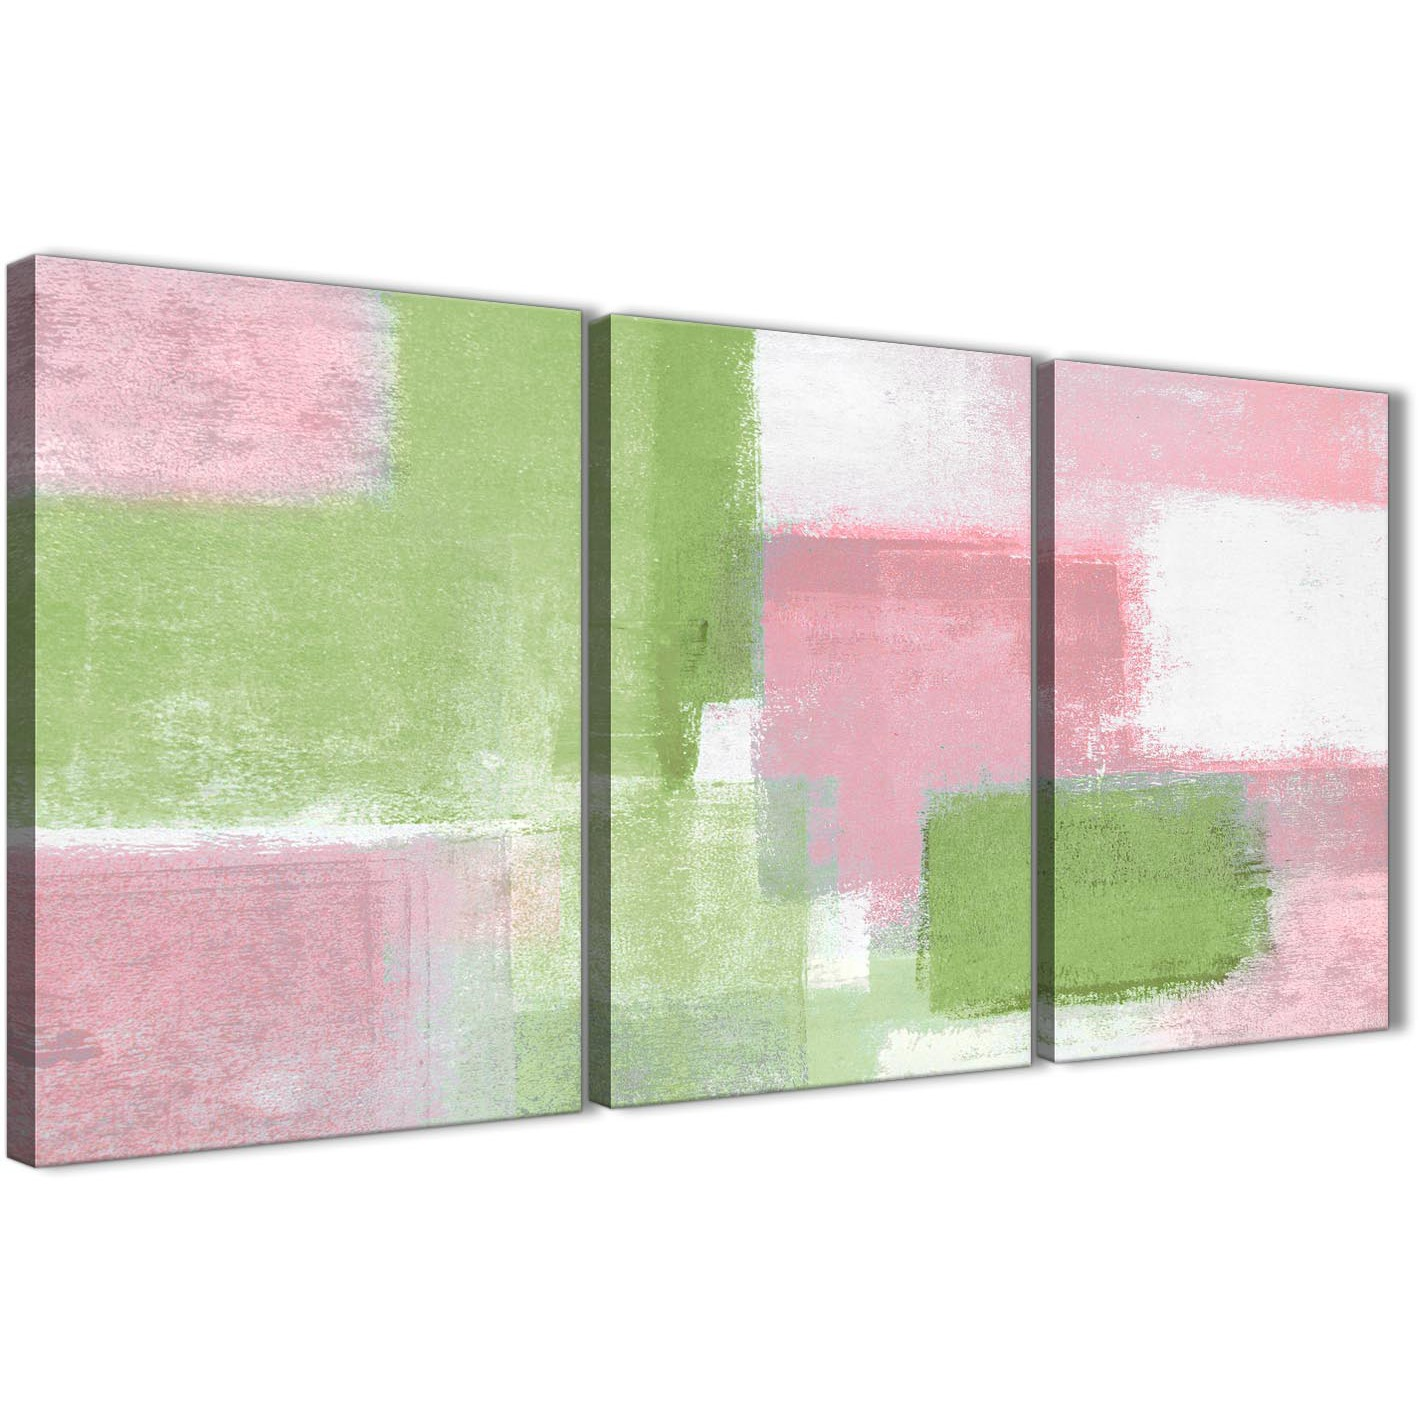 lime green office accessories. Next Set Of 3 Piece Pink Lime Green Office Canvas Wall Art Decor - Abstract Display Gallery Item 1 Accessories E